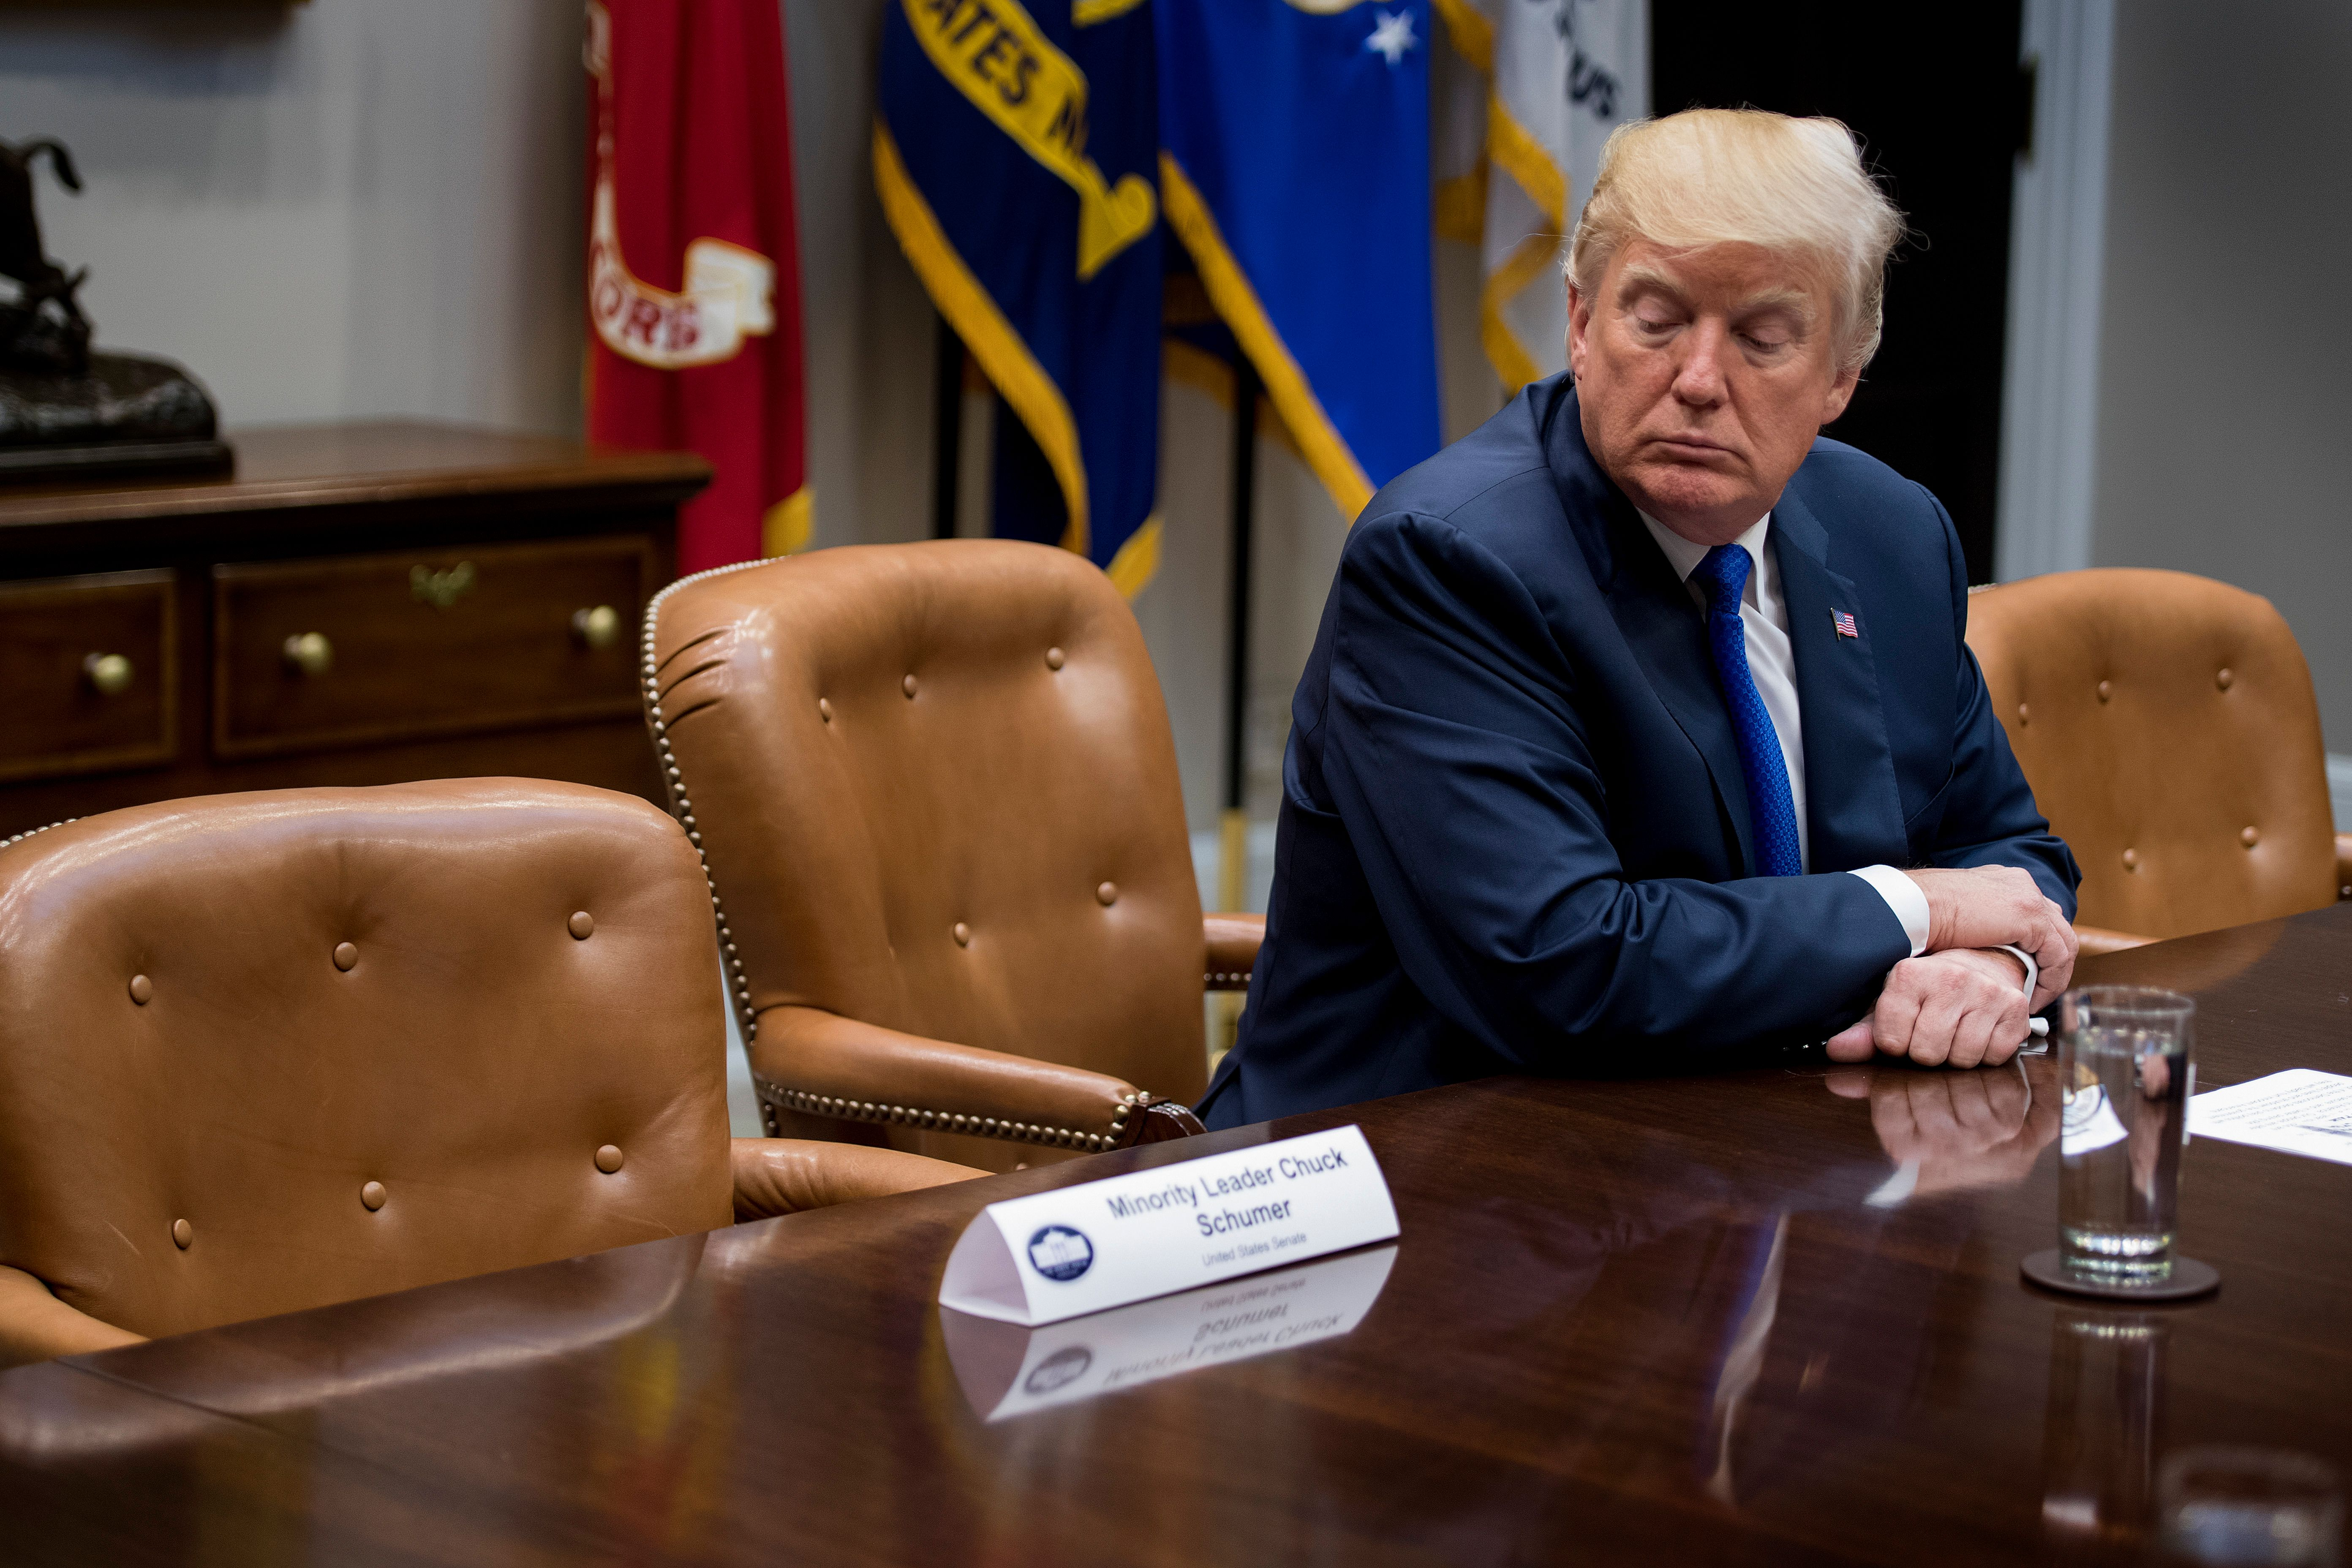 U.S. President Donald Trump looks at the empty chair of Senate Minority Leader Chuck Schumer (D-NY), after Schumer cancelled their meeting at the White House in Washington, D.C., on November 28, 2017.